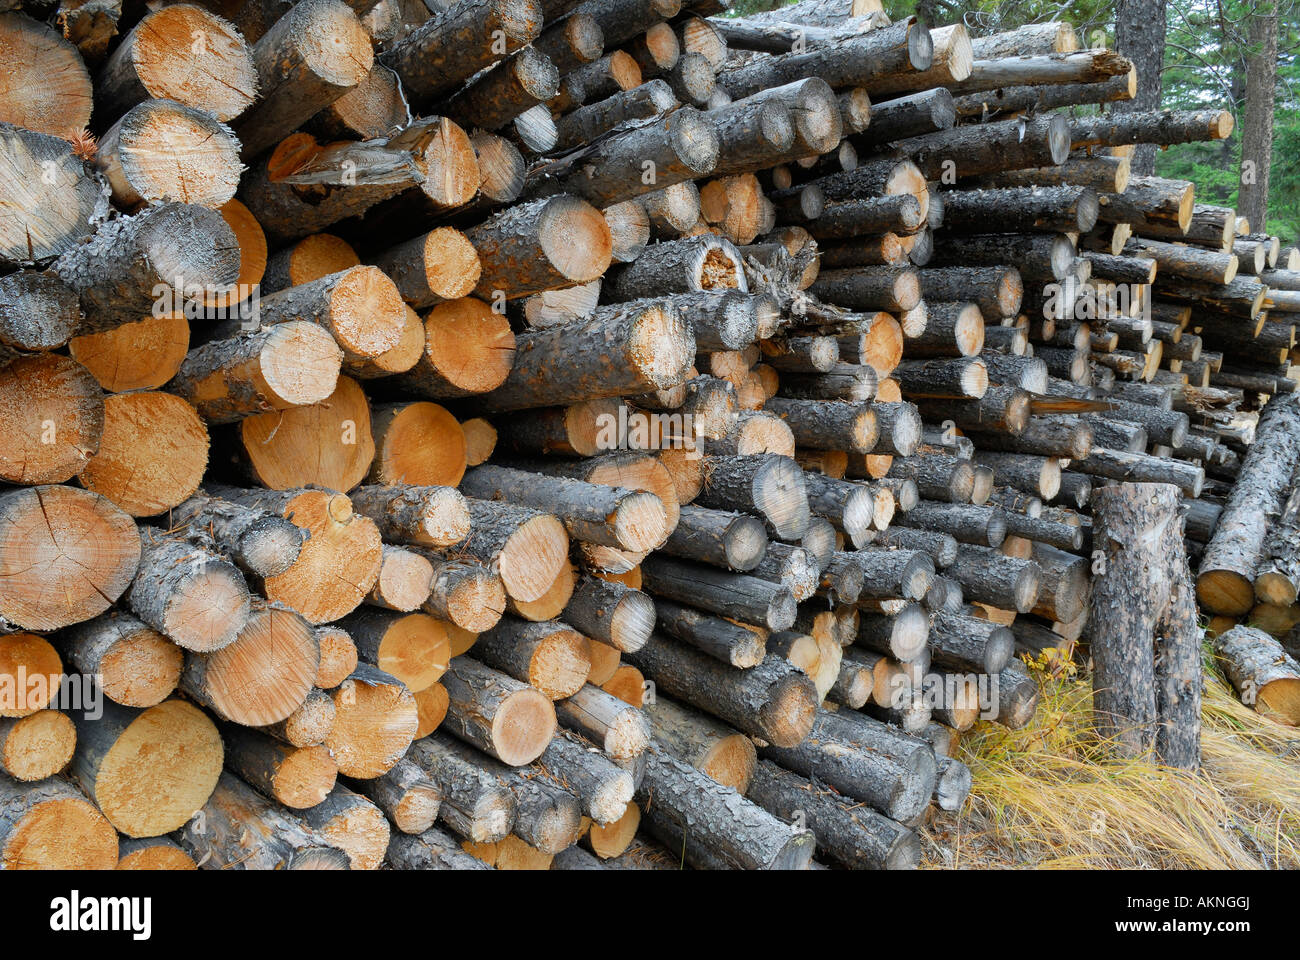 softwood logs stacked outside ready to be cut for firewood - Stock Image